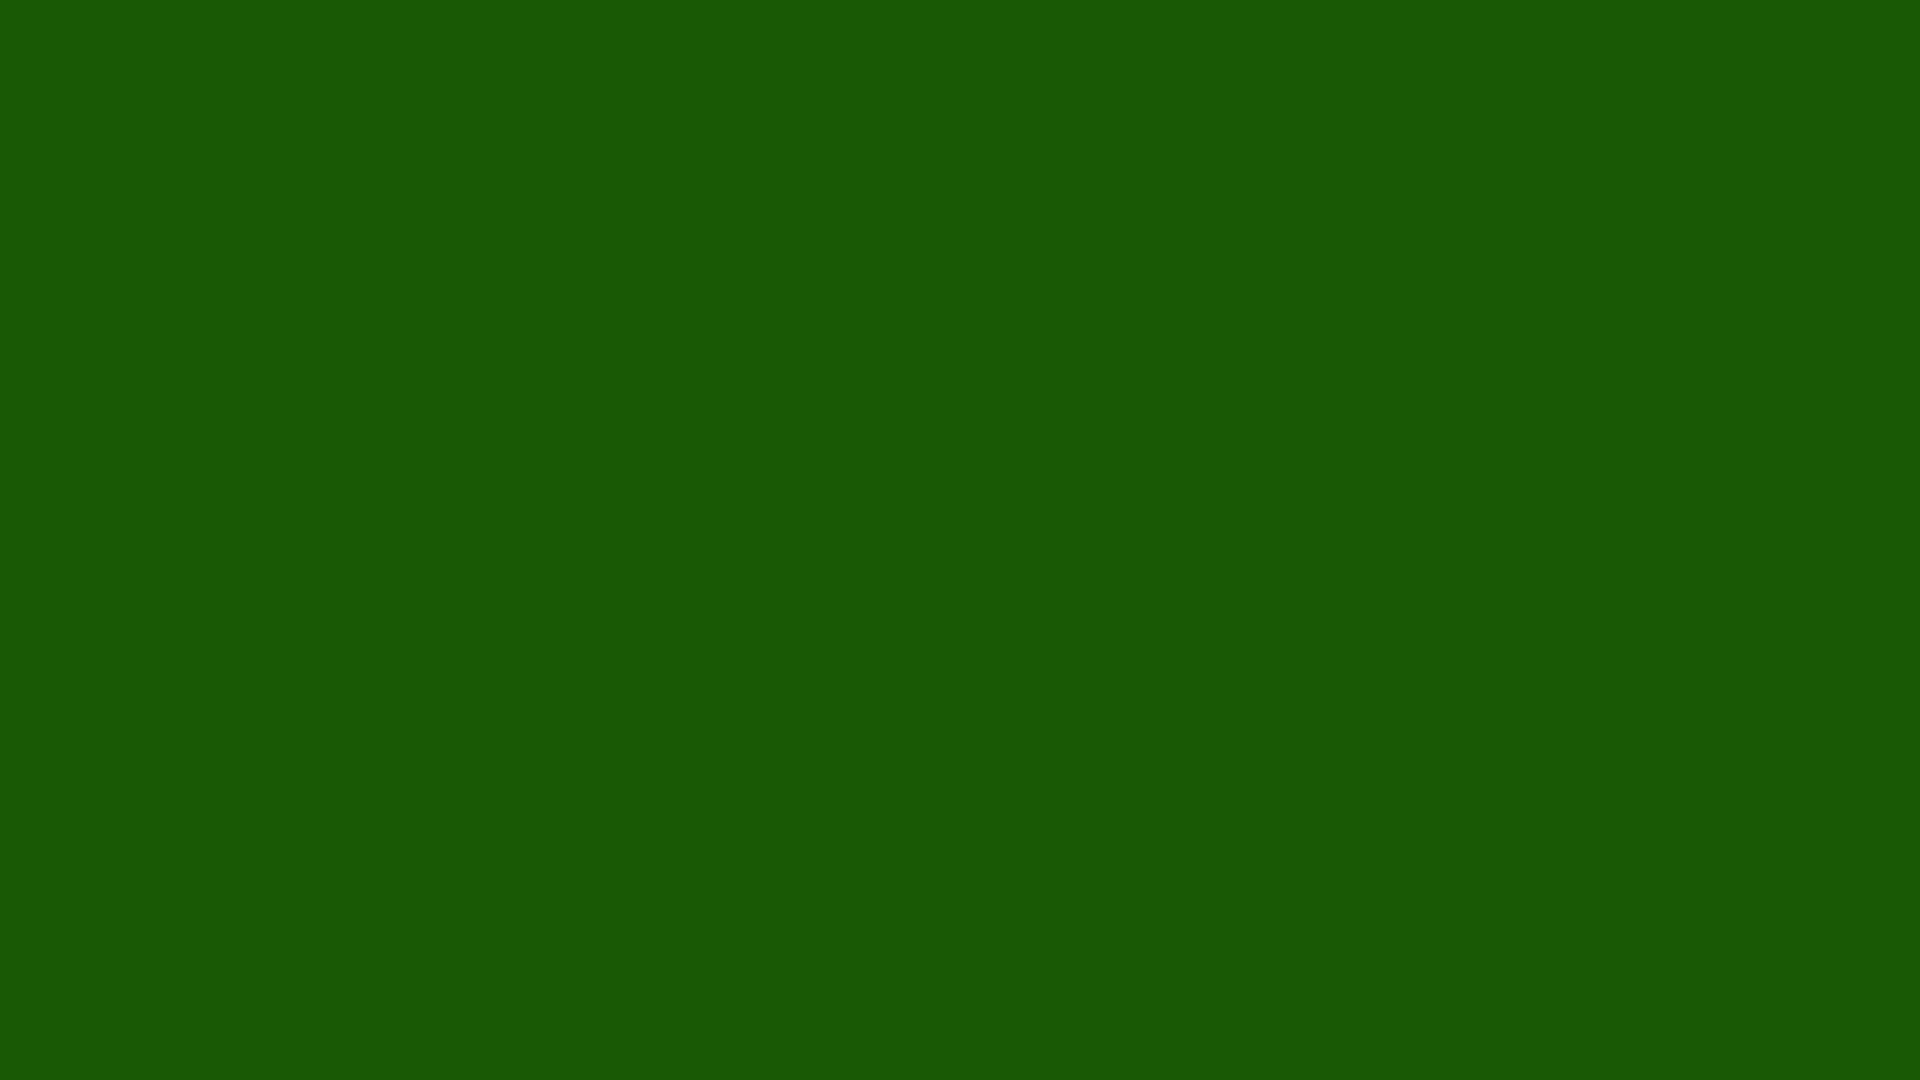 1920x1080 Lincoln Green Solid Color Background